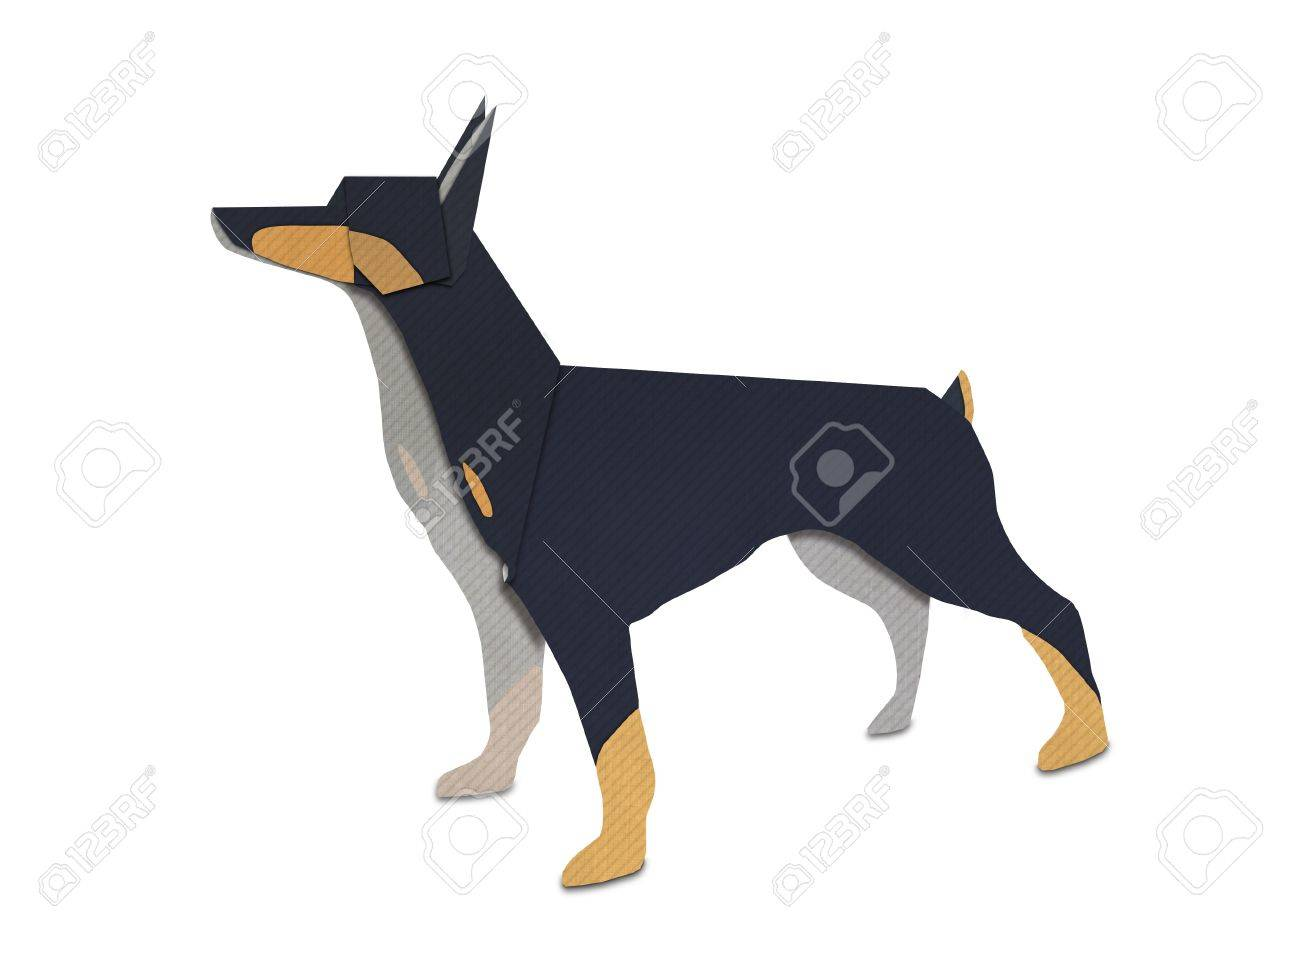 Origami of Dobermann form recycled paper Stock Photo - 14956173